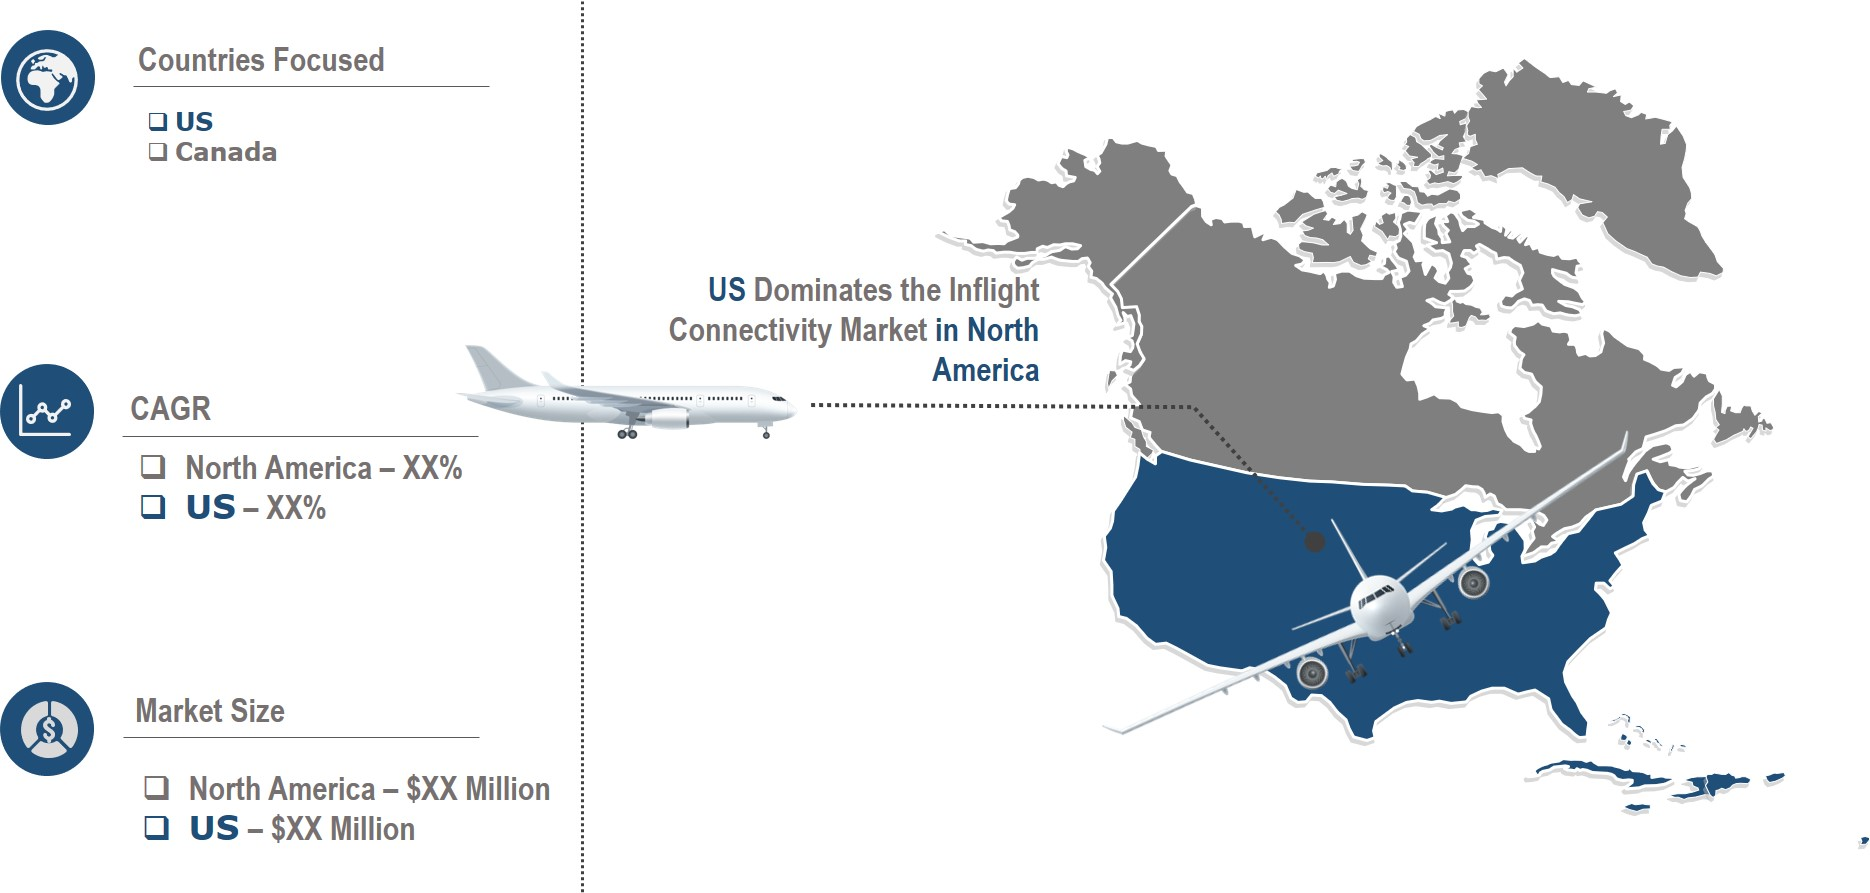 North America Inflight Connectivity Market